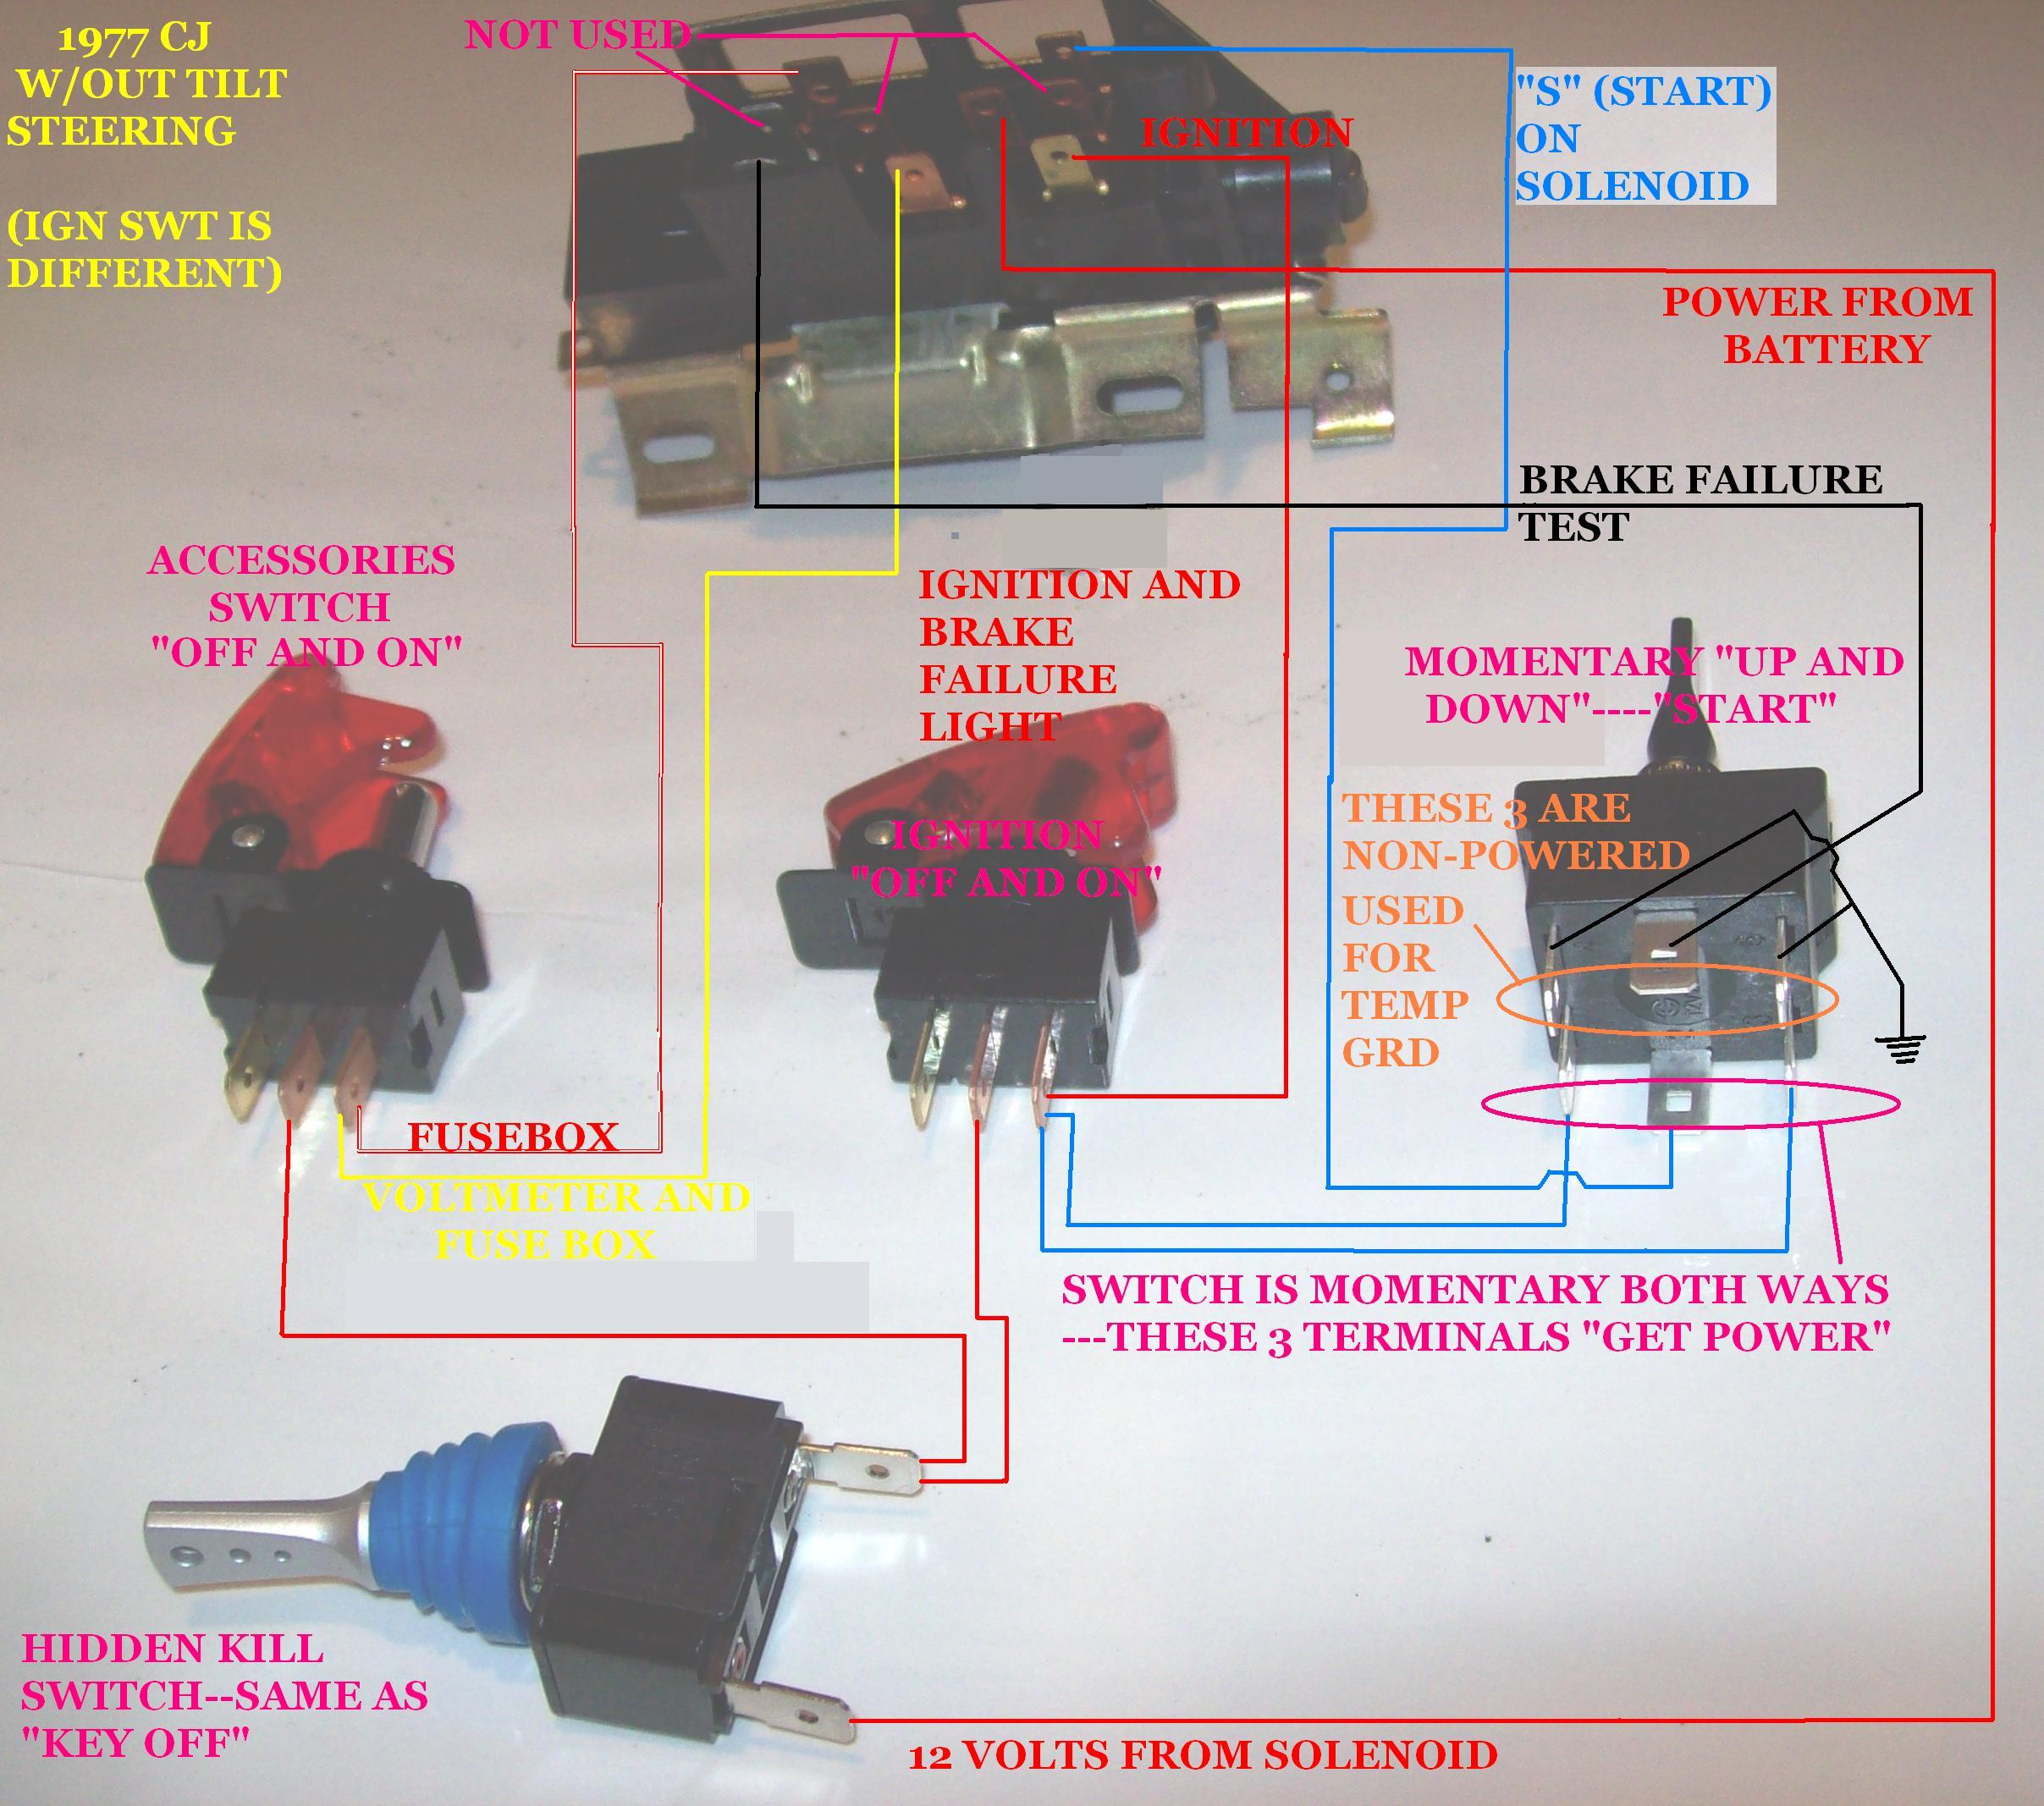 cj5 steering column diagram teco 3 phase induction motor wiring 1977 in need of an ignition pushbutton modification